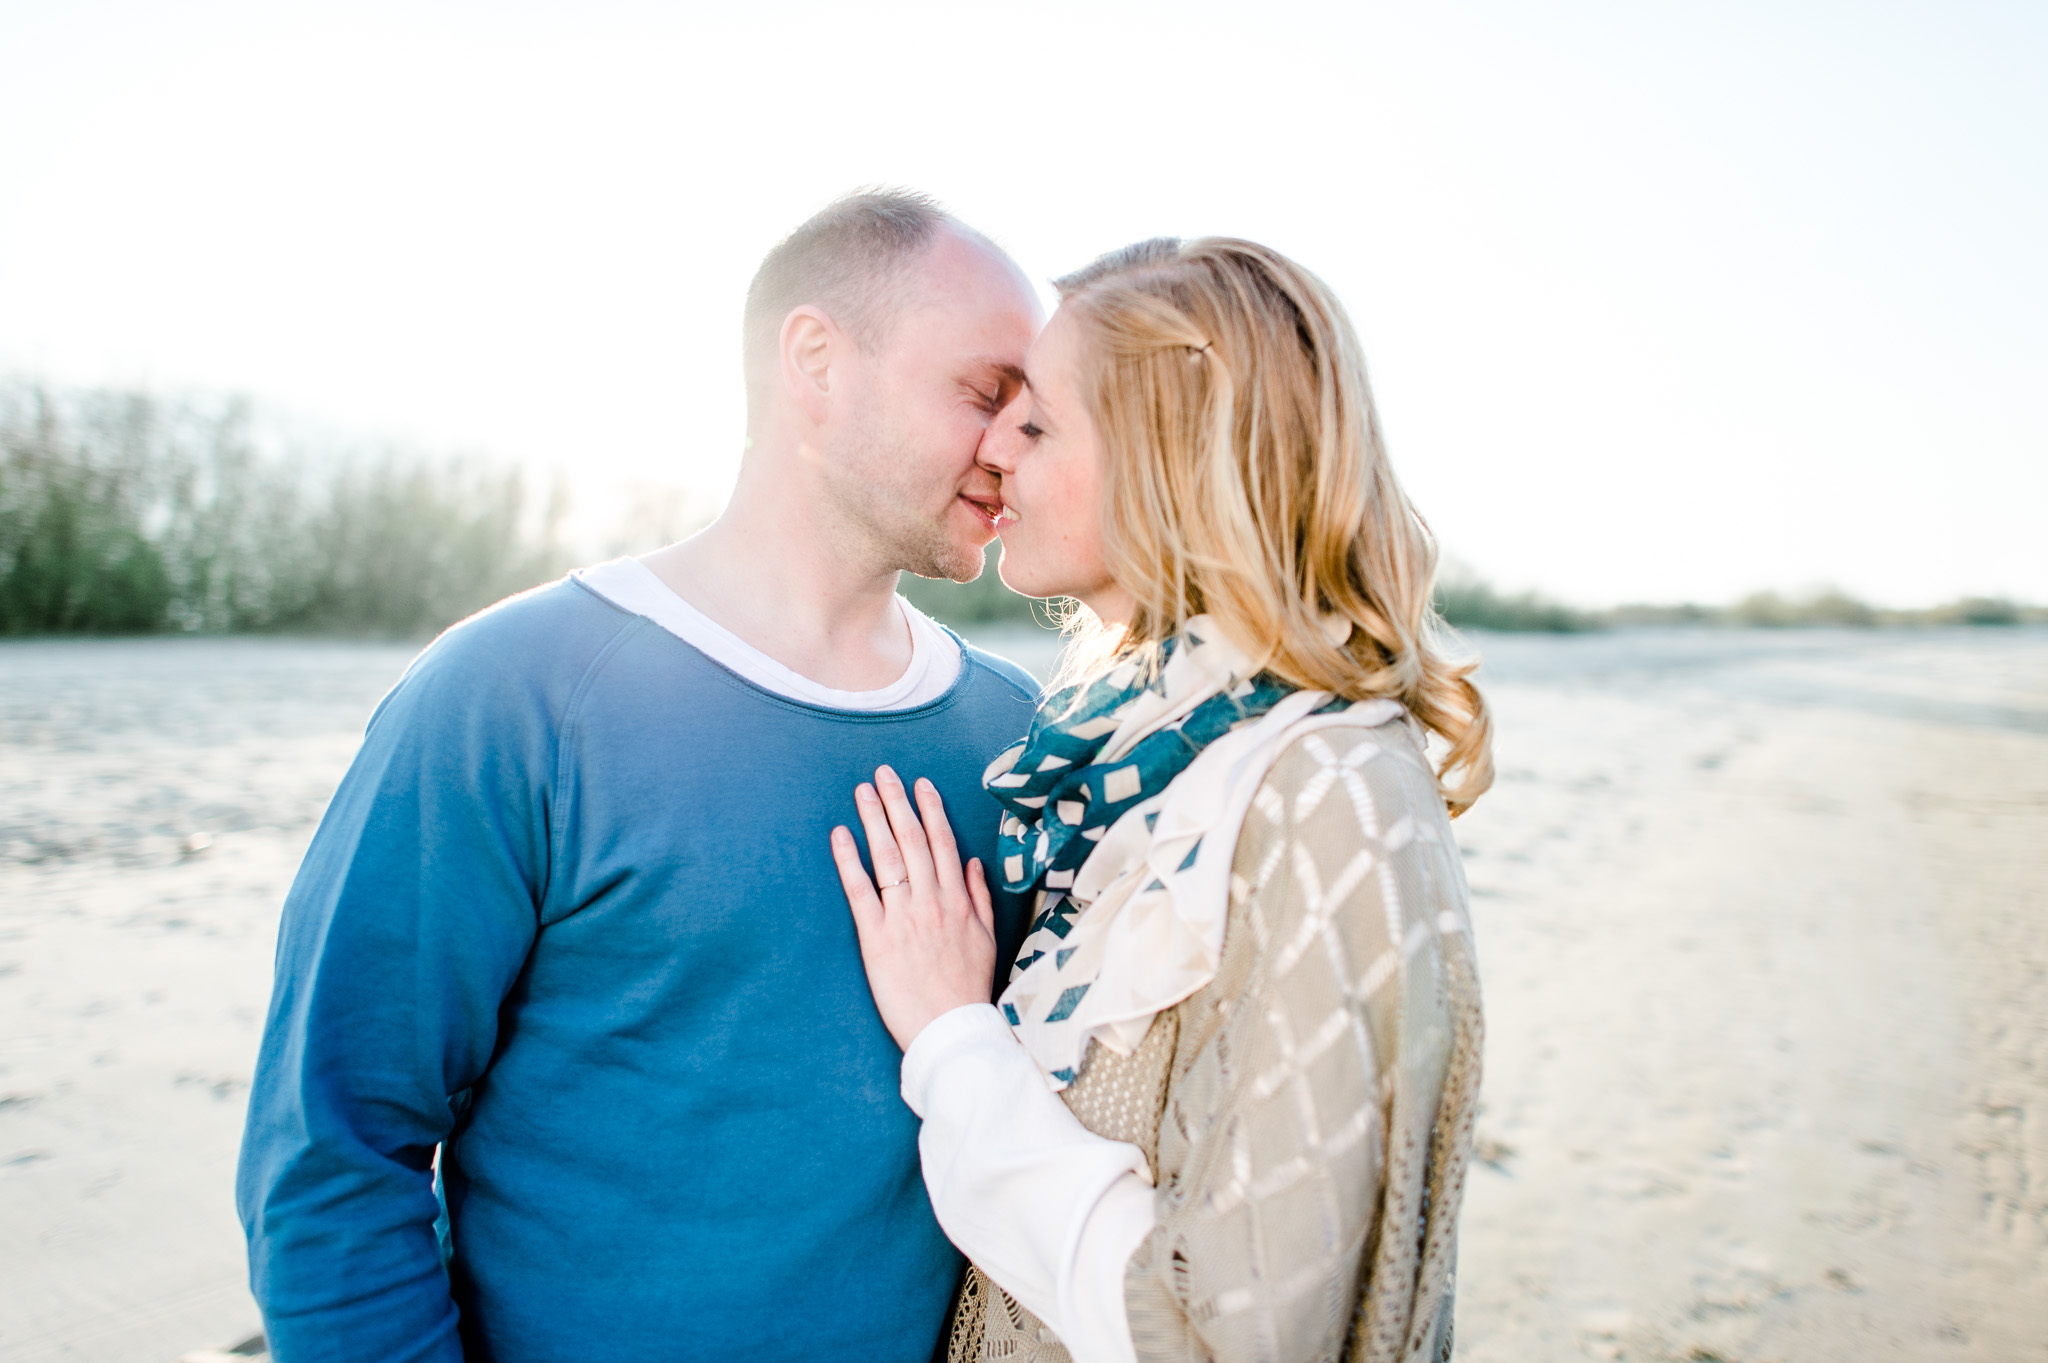 hochzeitsfotograf-wedding-photography-Engagement-stade-elbe011